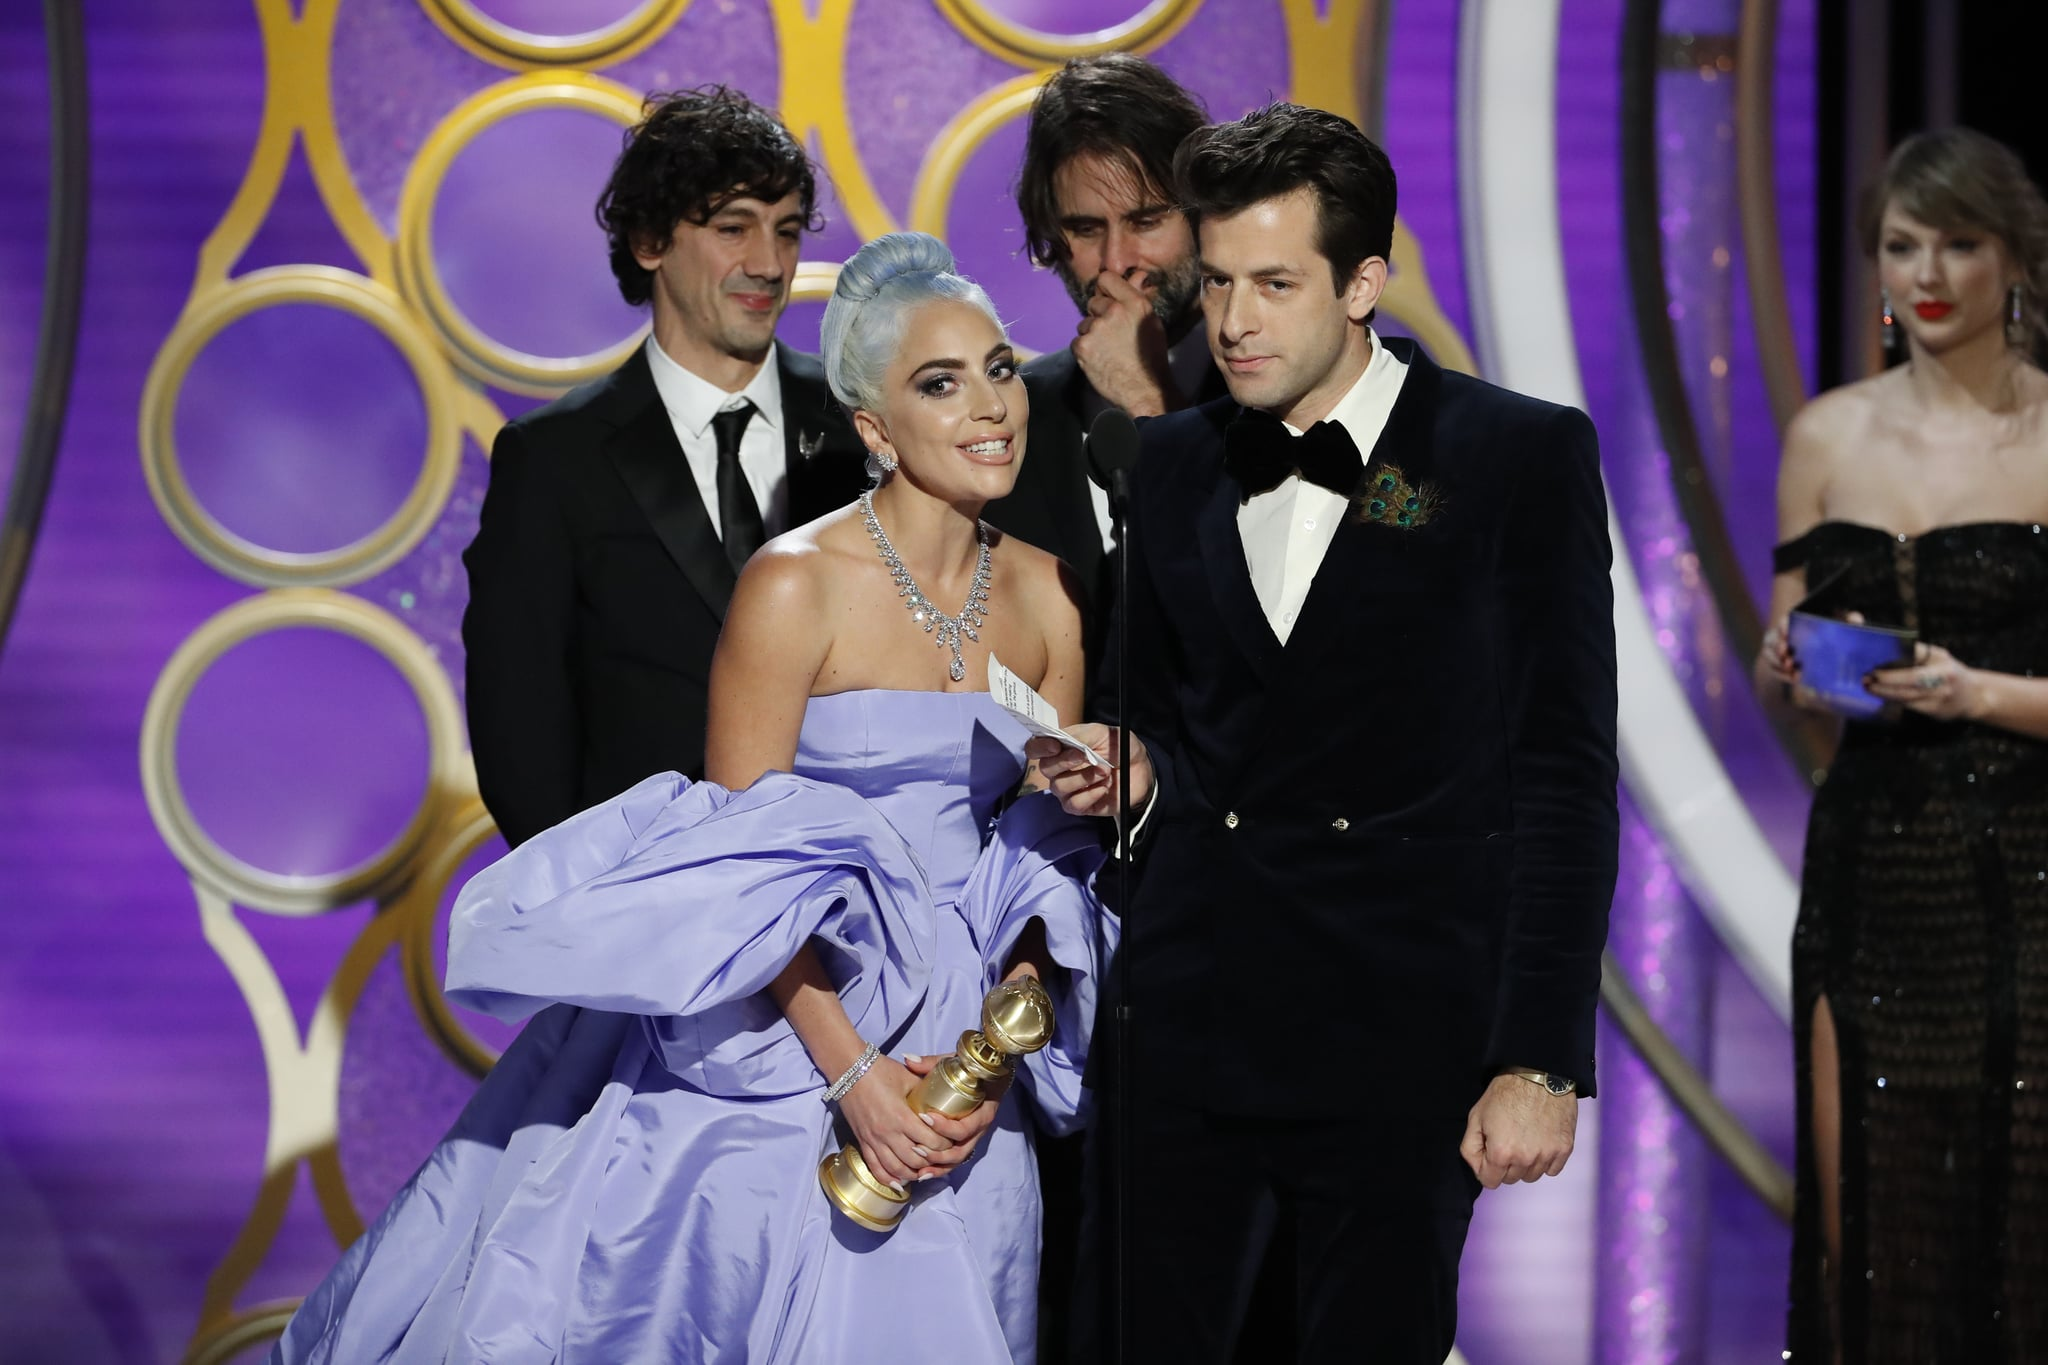 BEVERLY HILLS, CALIFORNIA - JANUARY 06: In this handout photo provided by NBCUniversal, Lady Gaga and Mark Ronson accept the Best Original Song - Motion Picture awards for